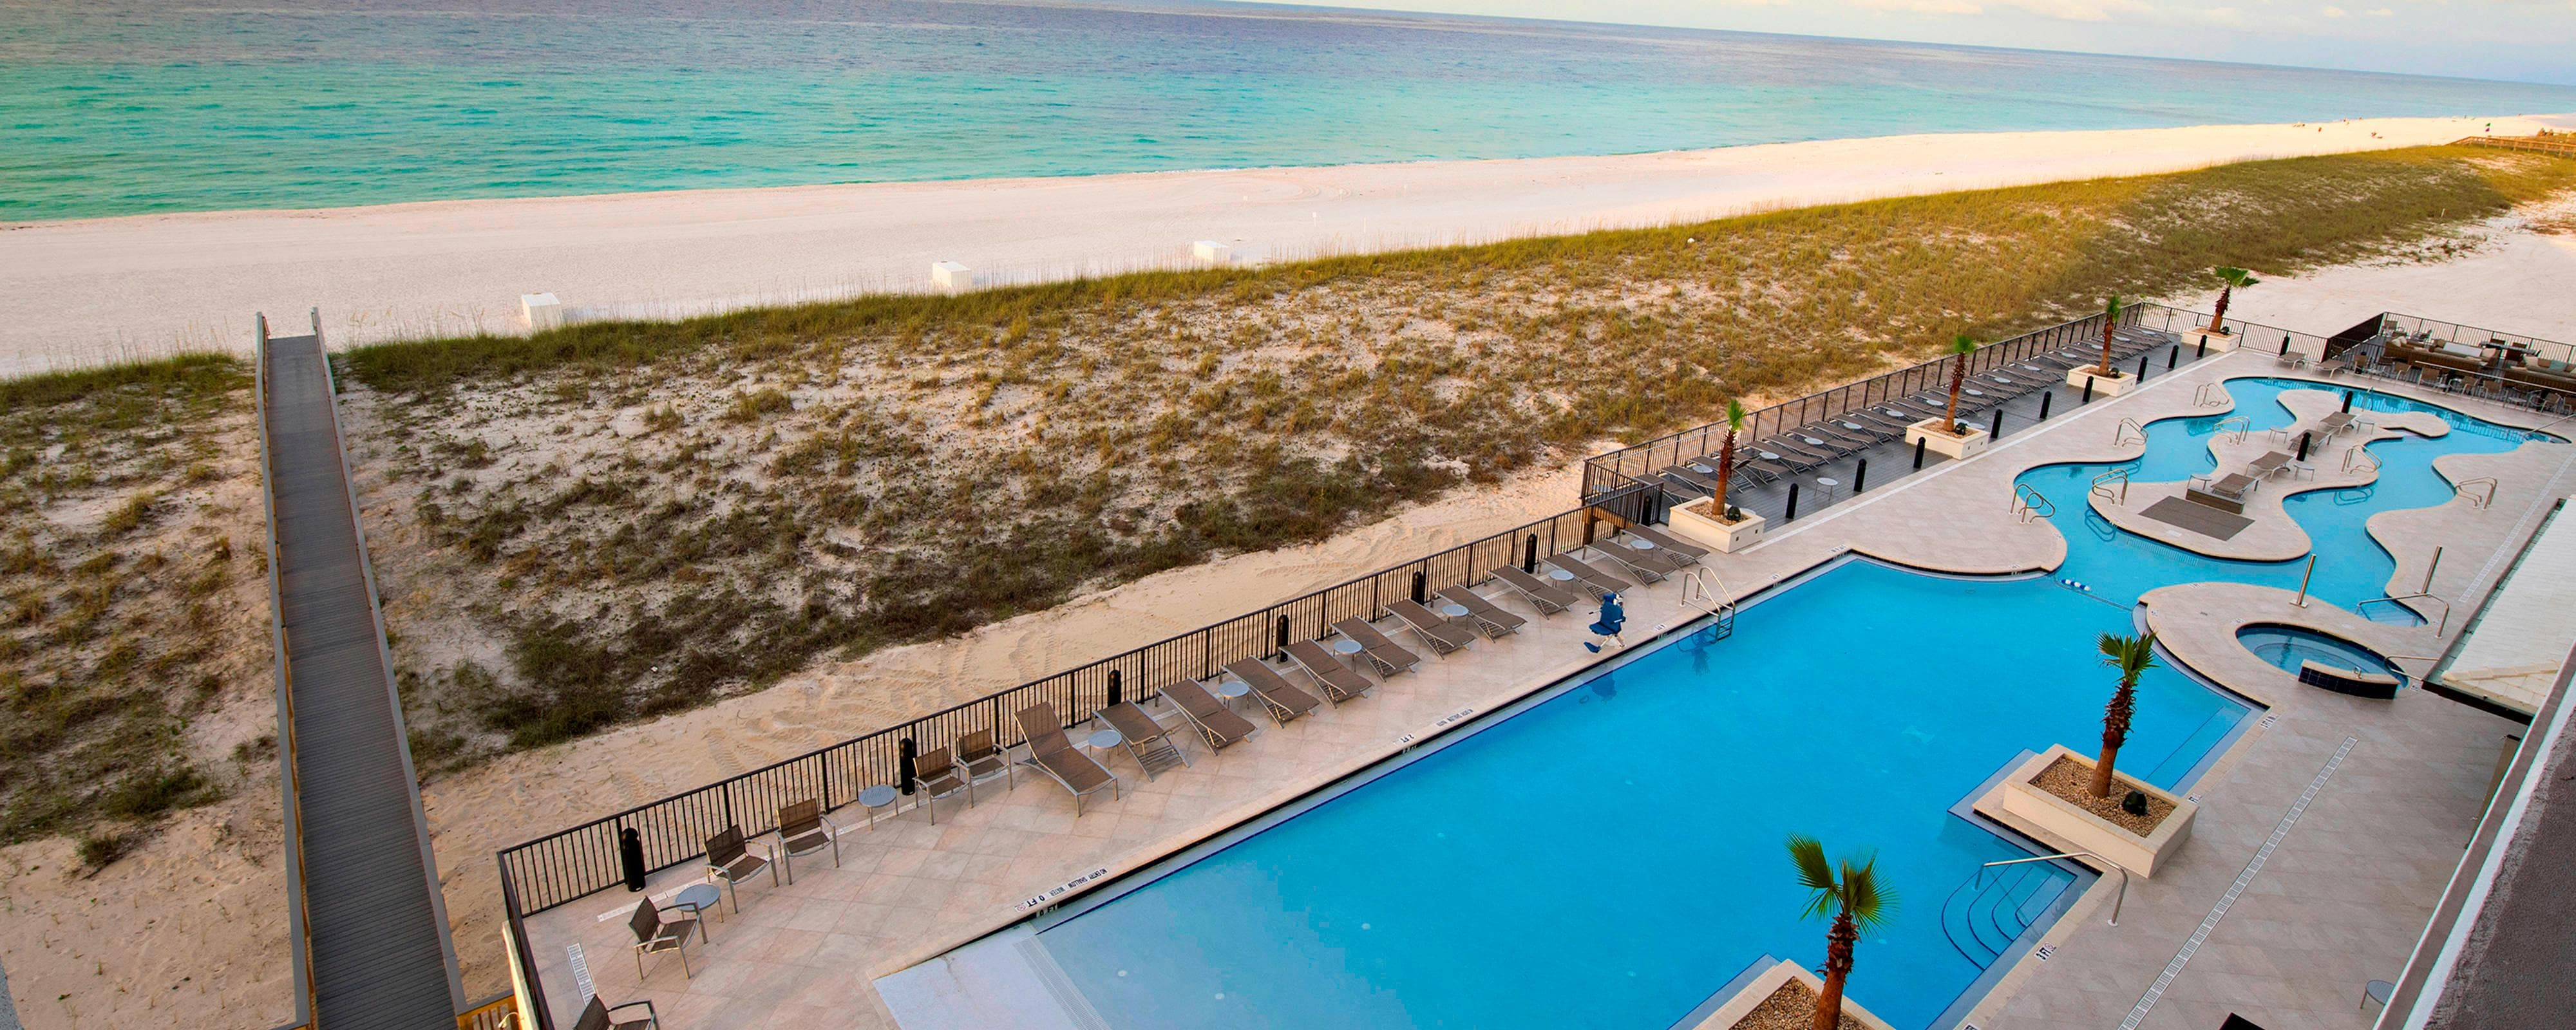 Hotel Amenities & Contact Information | SpringHill Suites Navarre Beach